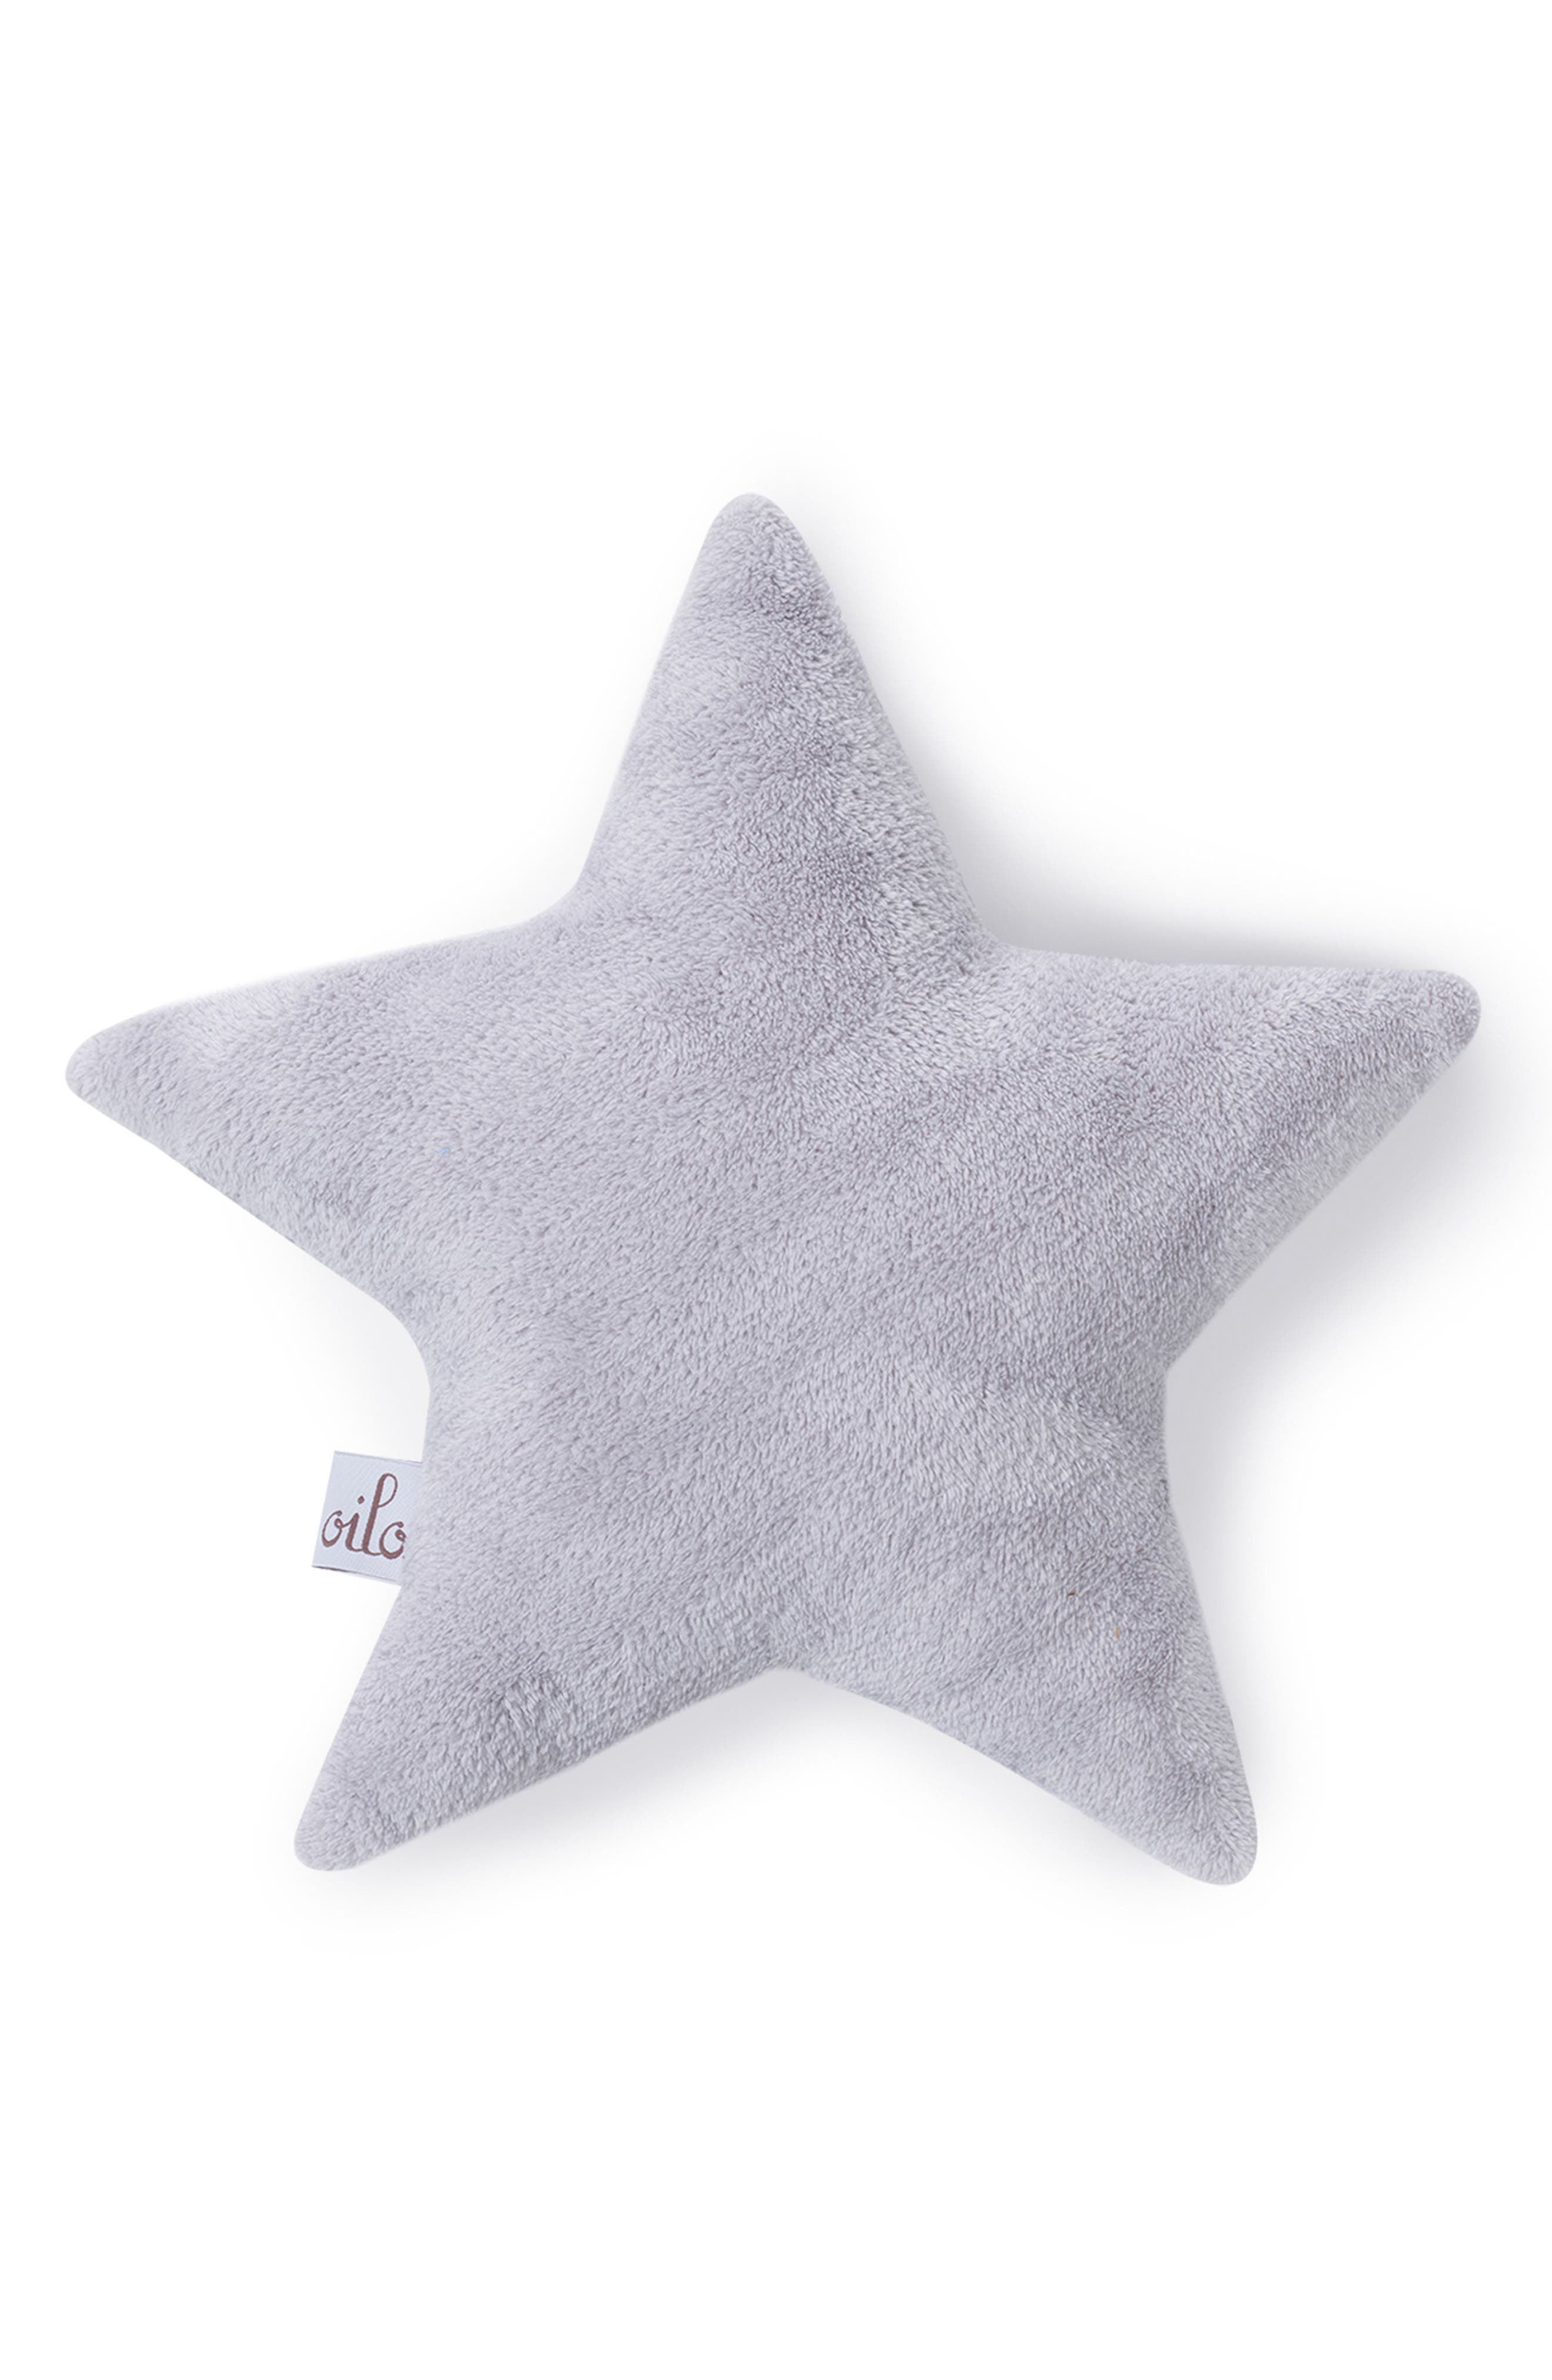 Silver Star & White Cloud Pillow Set,                             Alternate thumbnail 2, color,                             Fawn